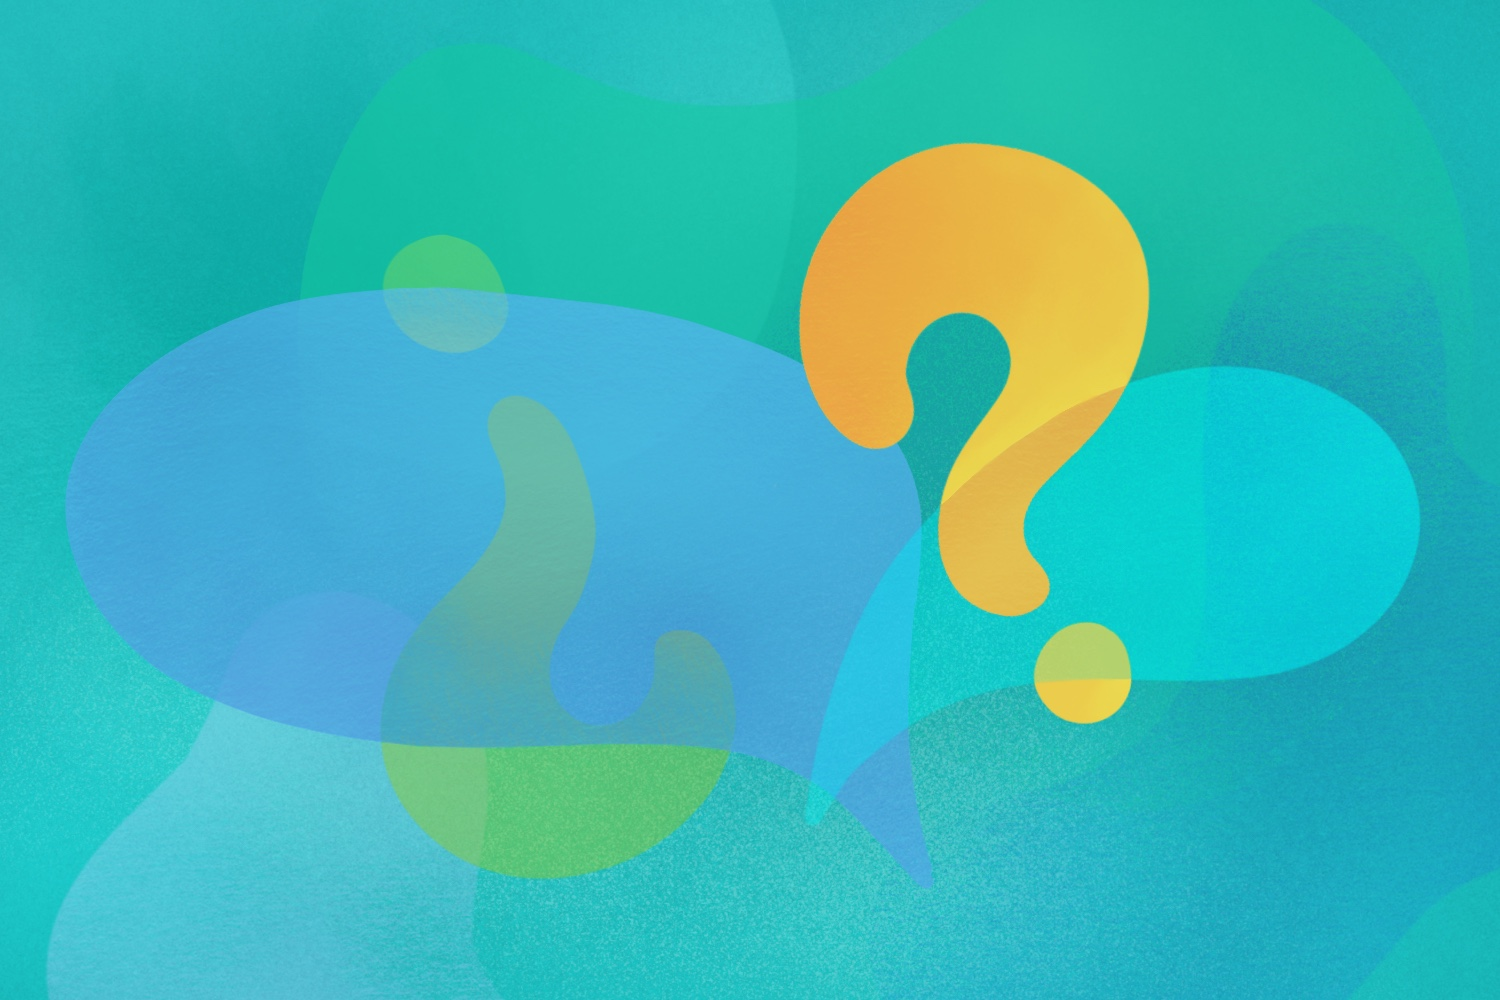 An illustration of abstract blobs with question marks and speech bubbles